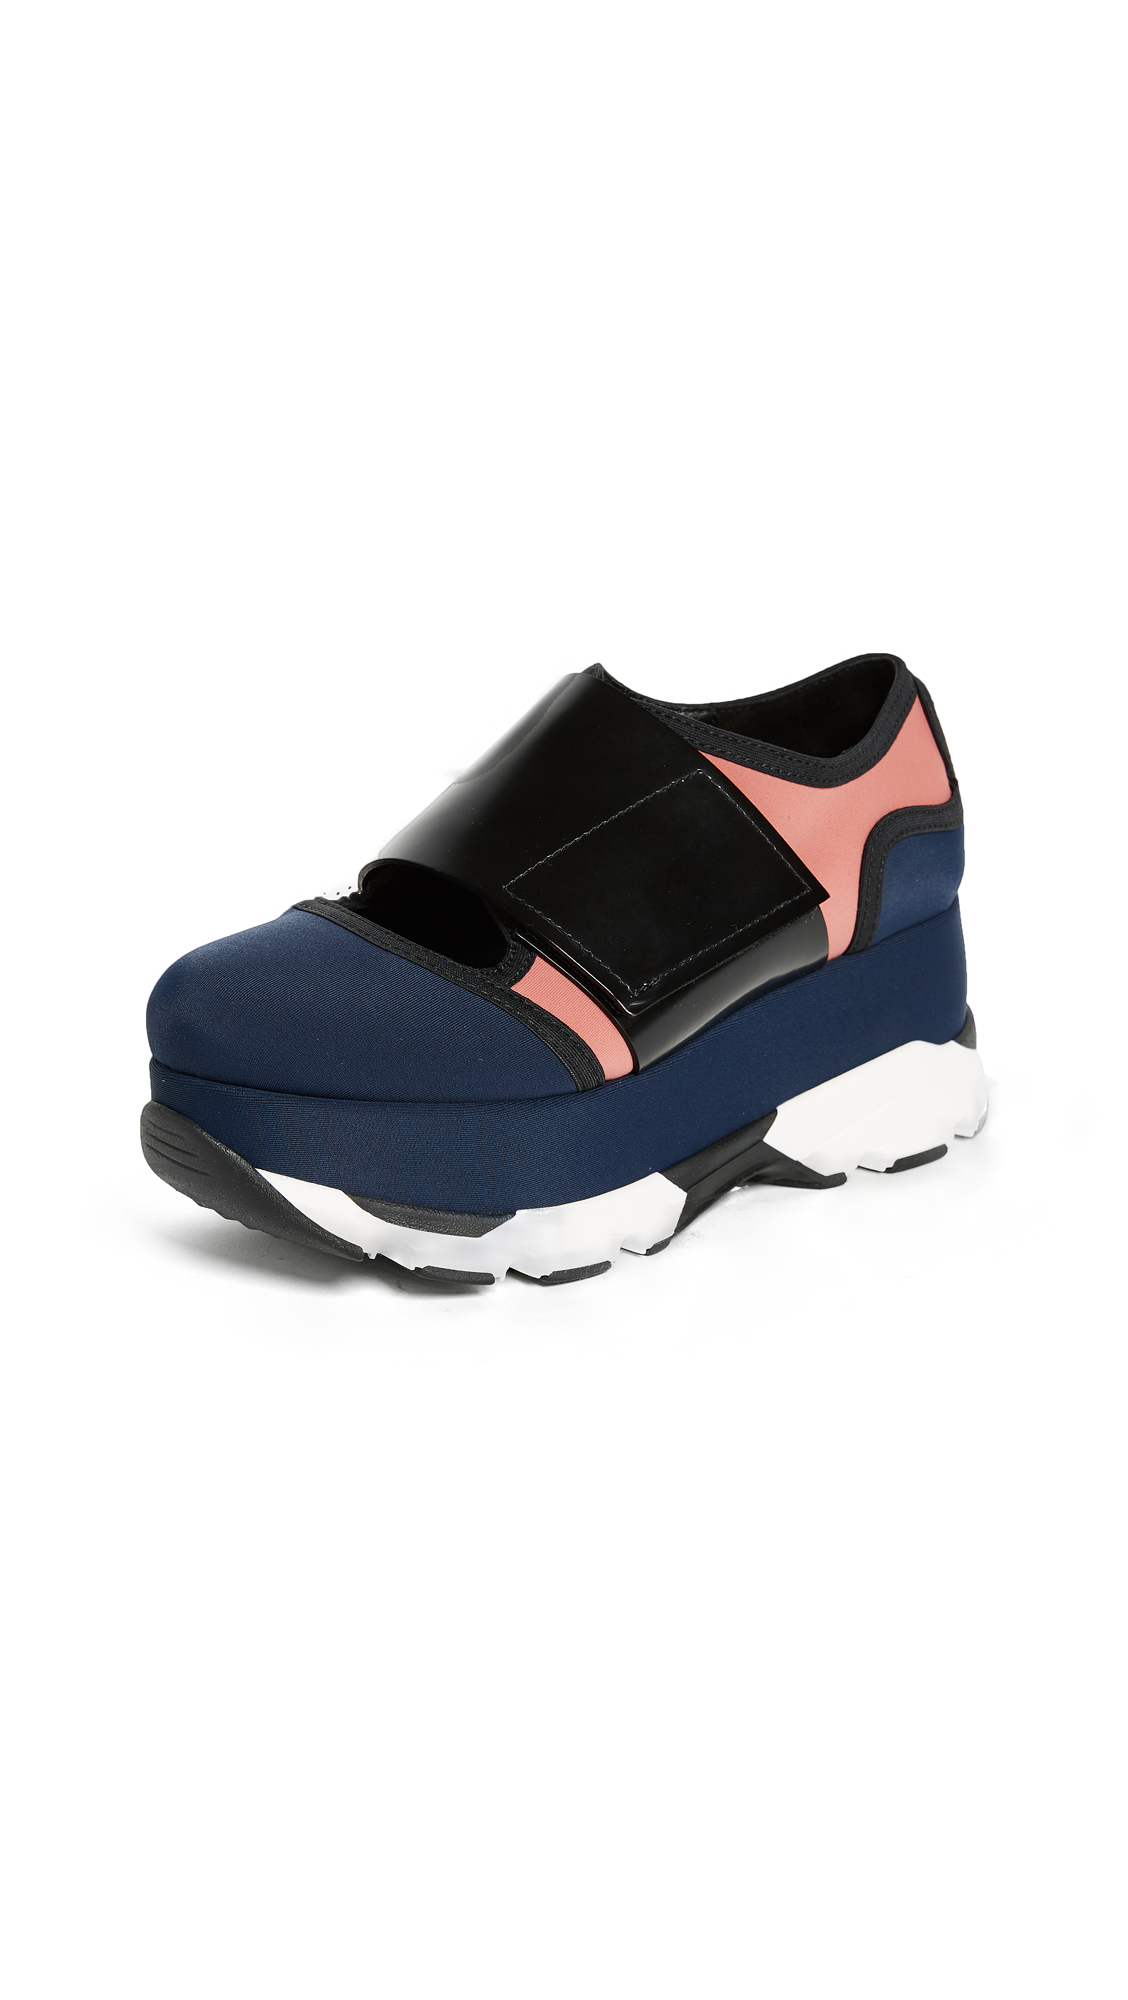 Marni Platform Sneakers - Eclipse/Quartz/Black